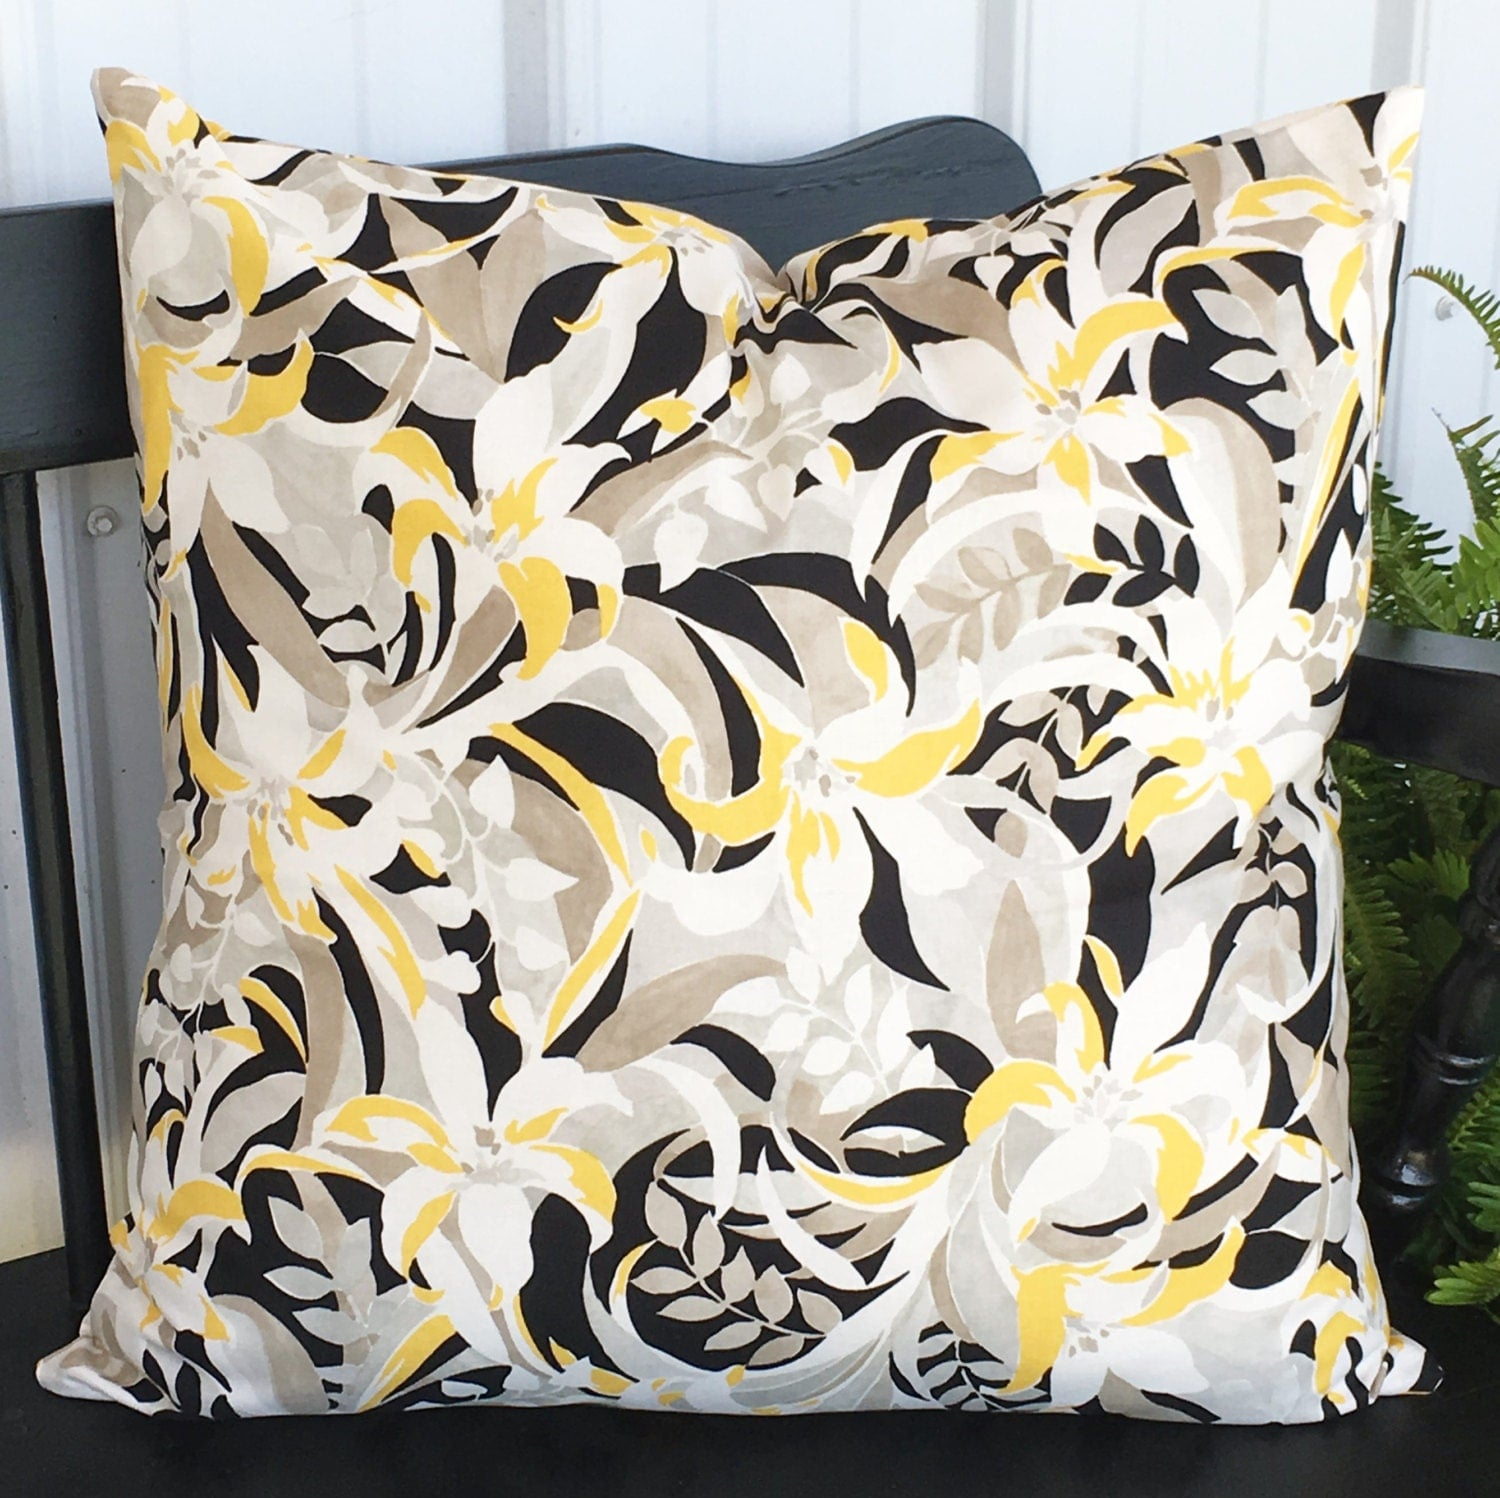 Black White And Yellow Decorative Pillows : Pillow cover 20x20 black yellow taupe and white Decorative